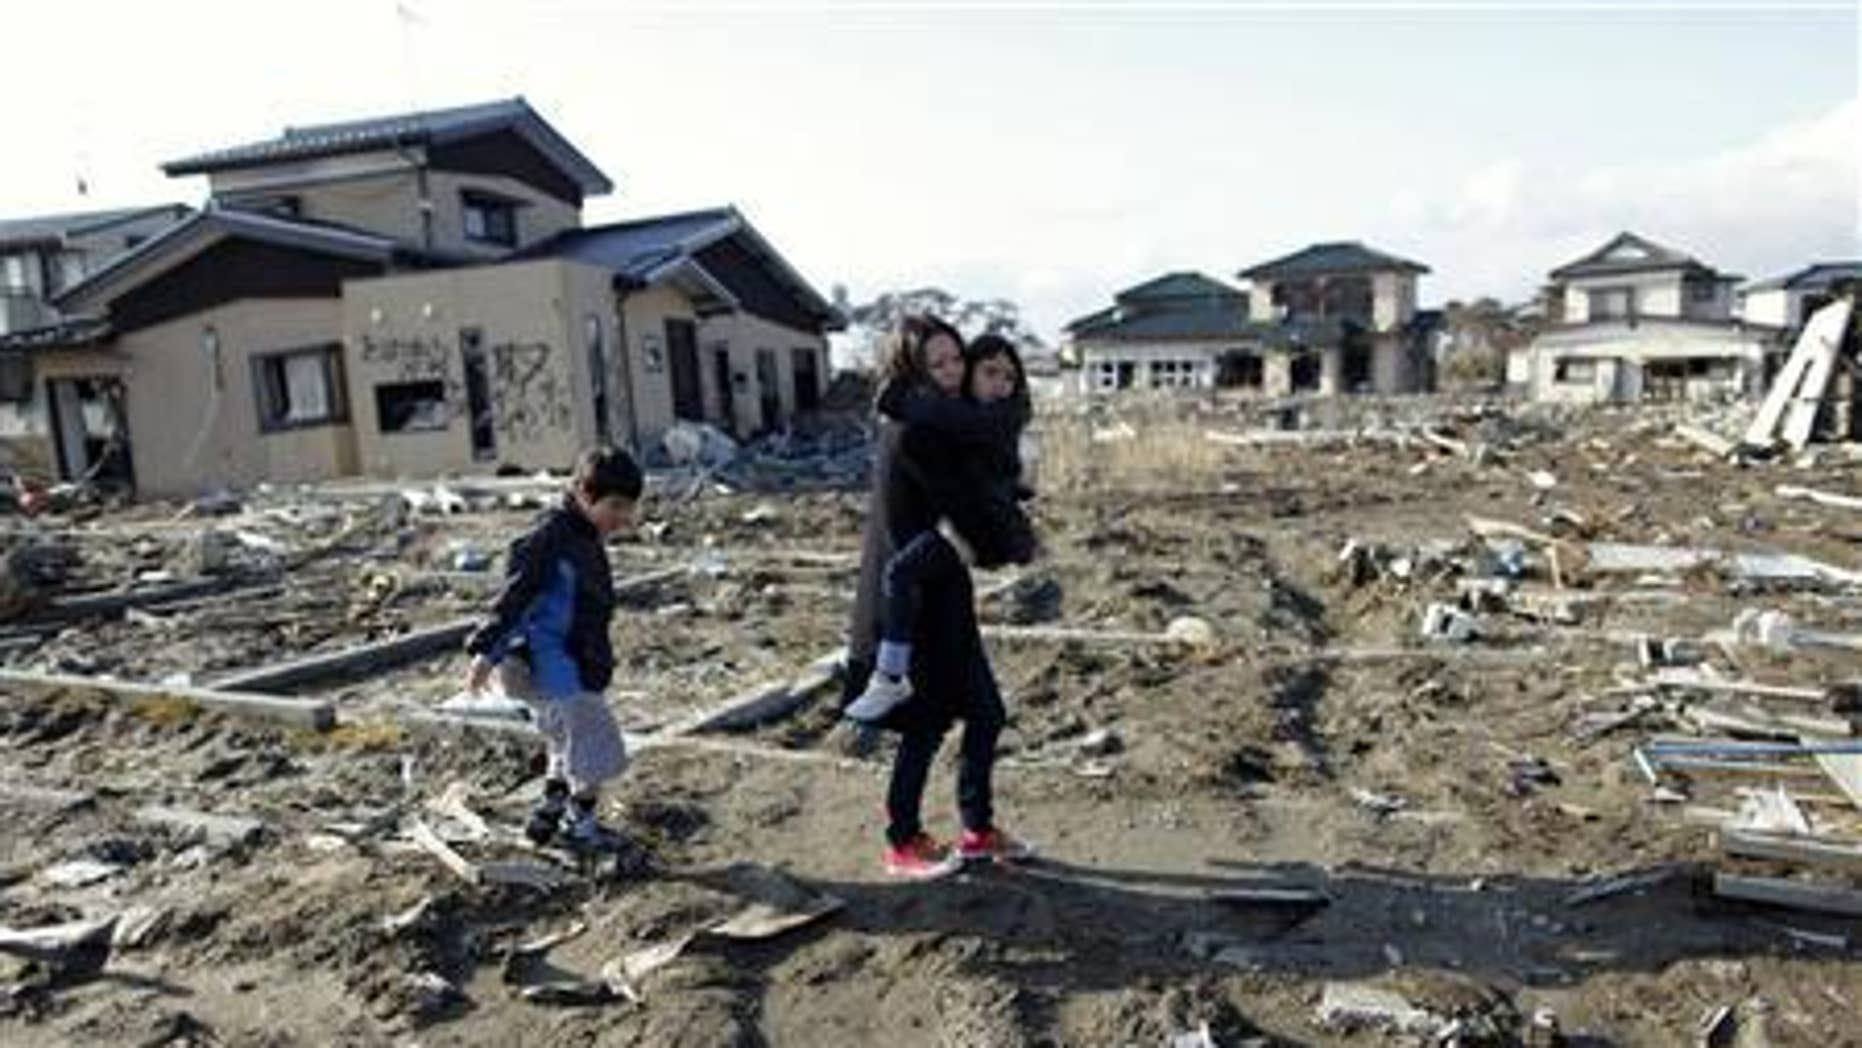 Wakana Kumagai, 7, carried by her mother Yoshiko and followed by her brother Koki visit the spot where their house, which was washed away by the March 11, 2011 tsunami, used to stand in Higashimatsushima, Miyagi prefecture